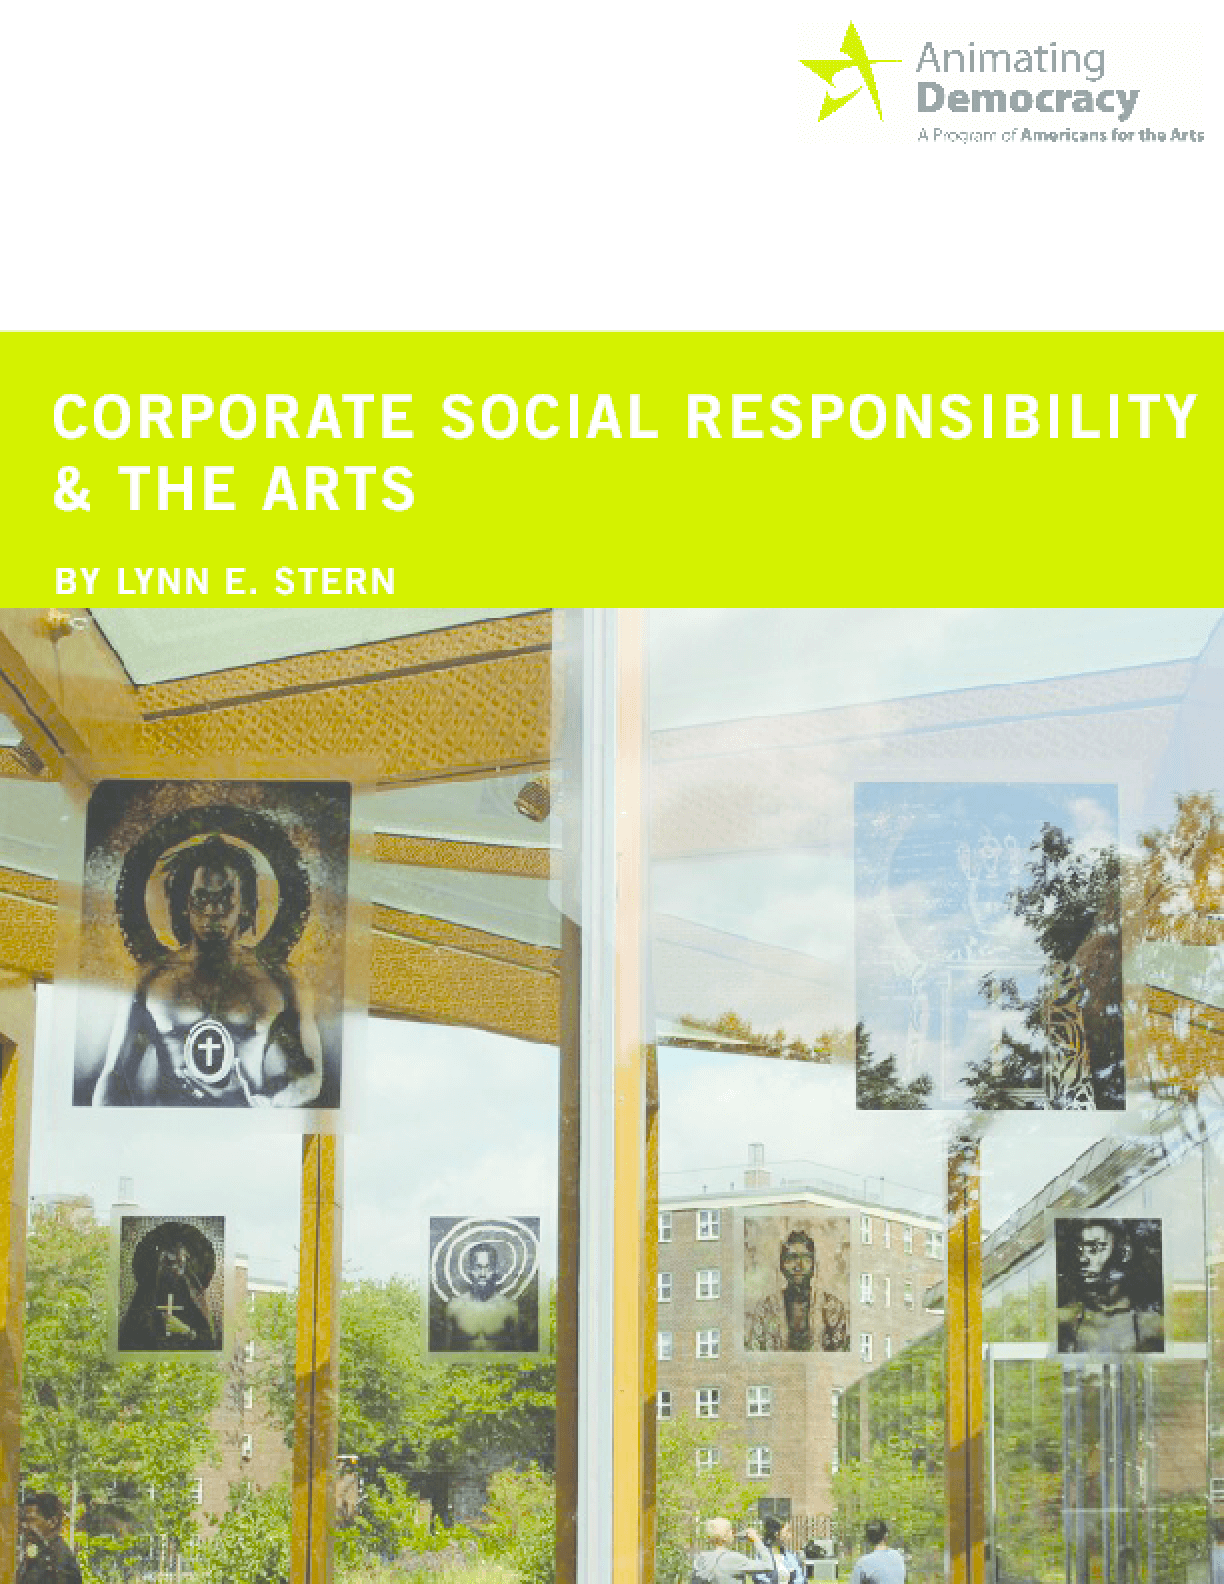 Corporate Social Responsibility and The Arts